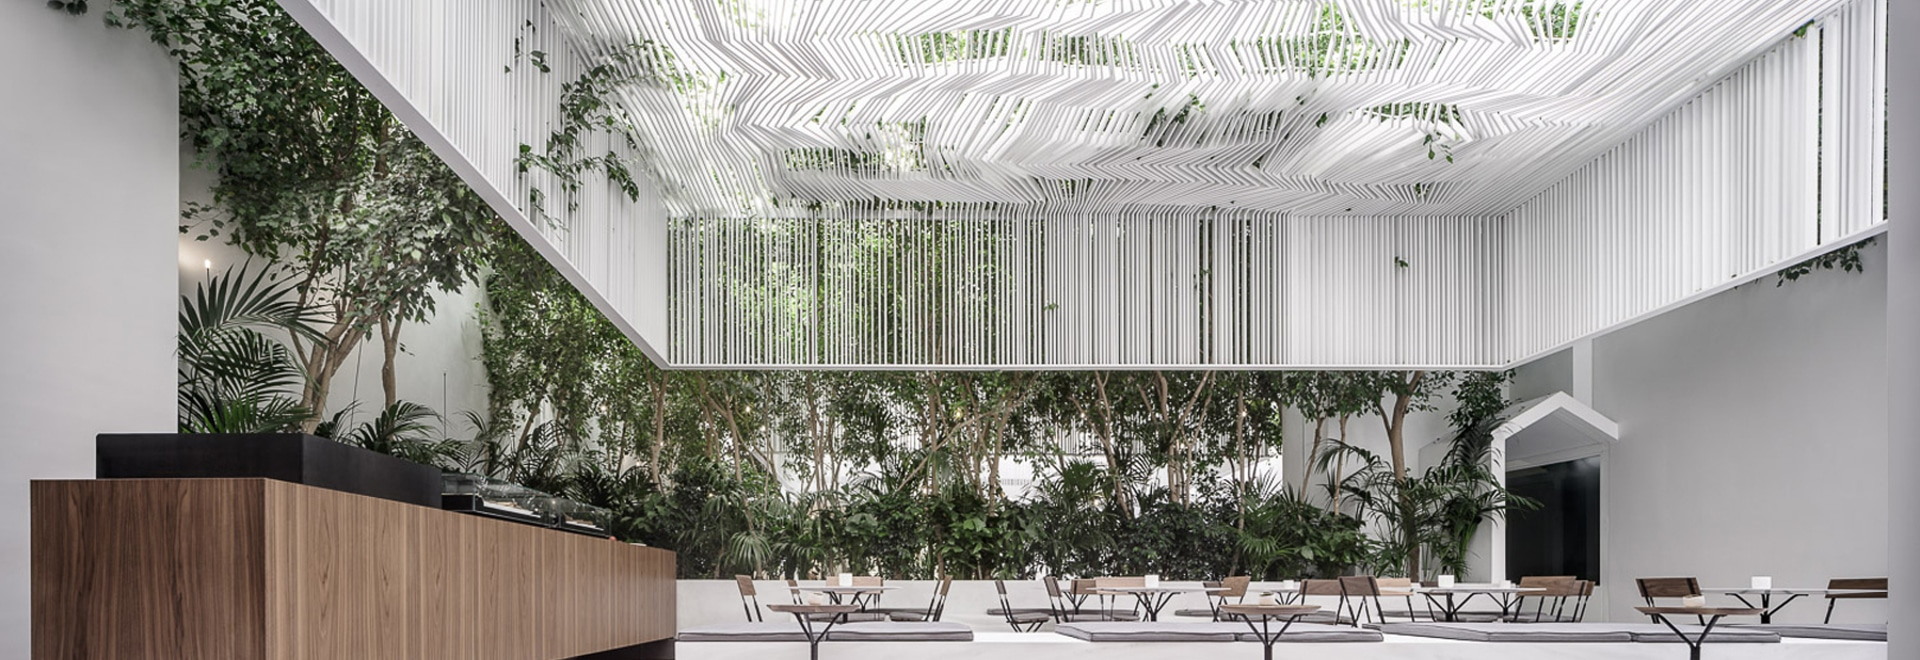 kois associated architects hang sculptural ceiling canopy over museum café in athens & kois associated architects hang sculptural ceiling canopy over ...